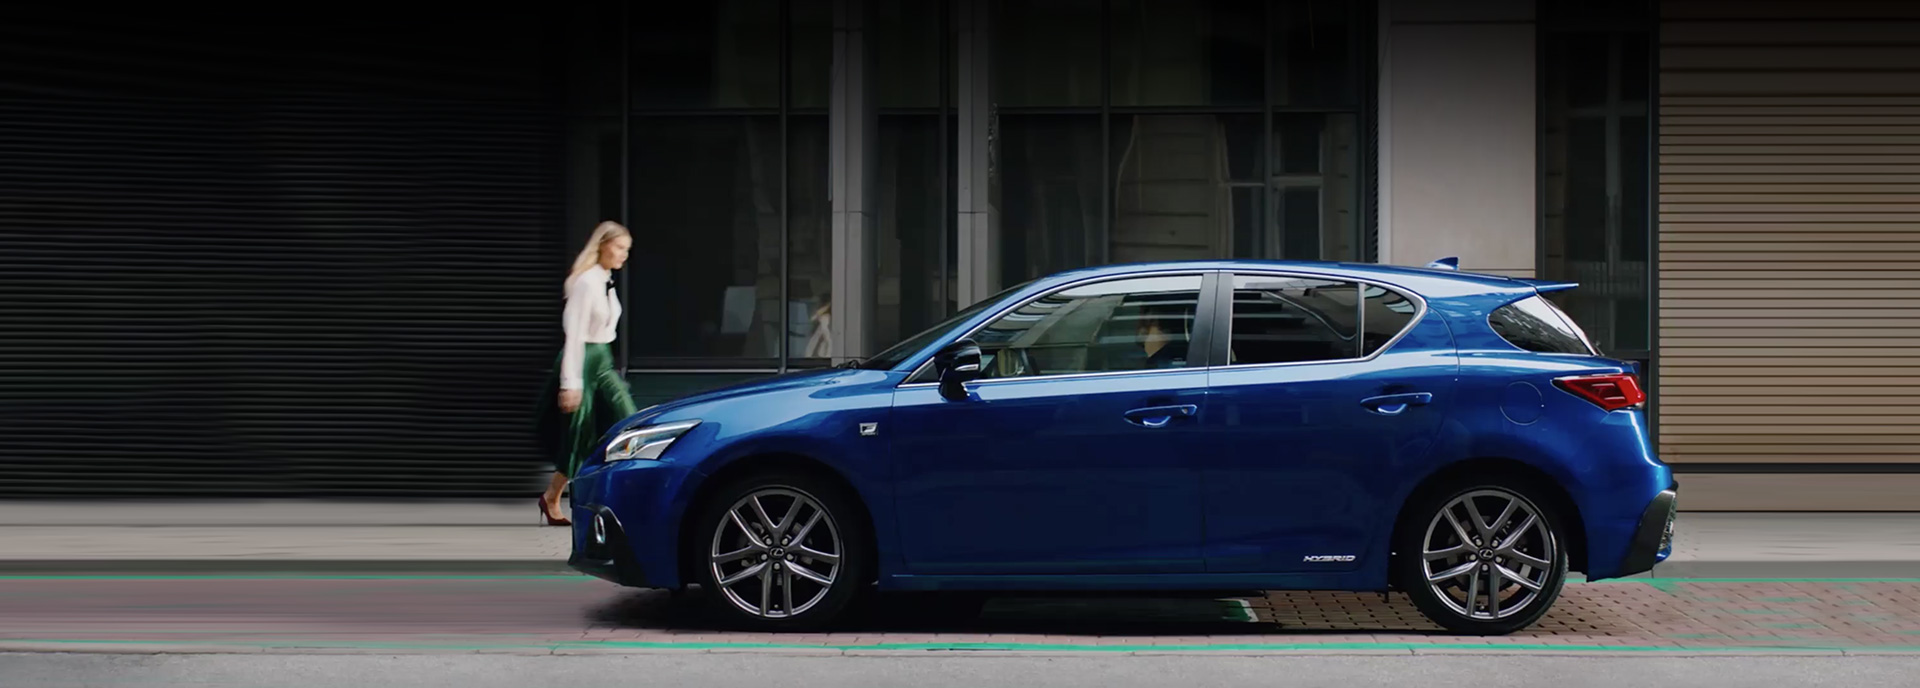 2018 lexus ct hero